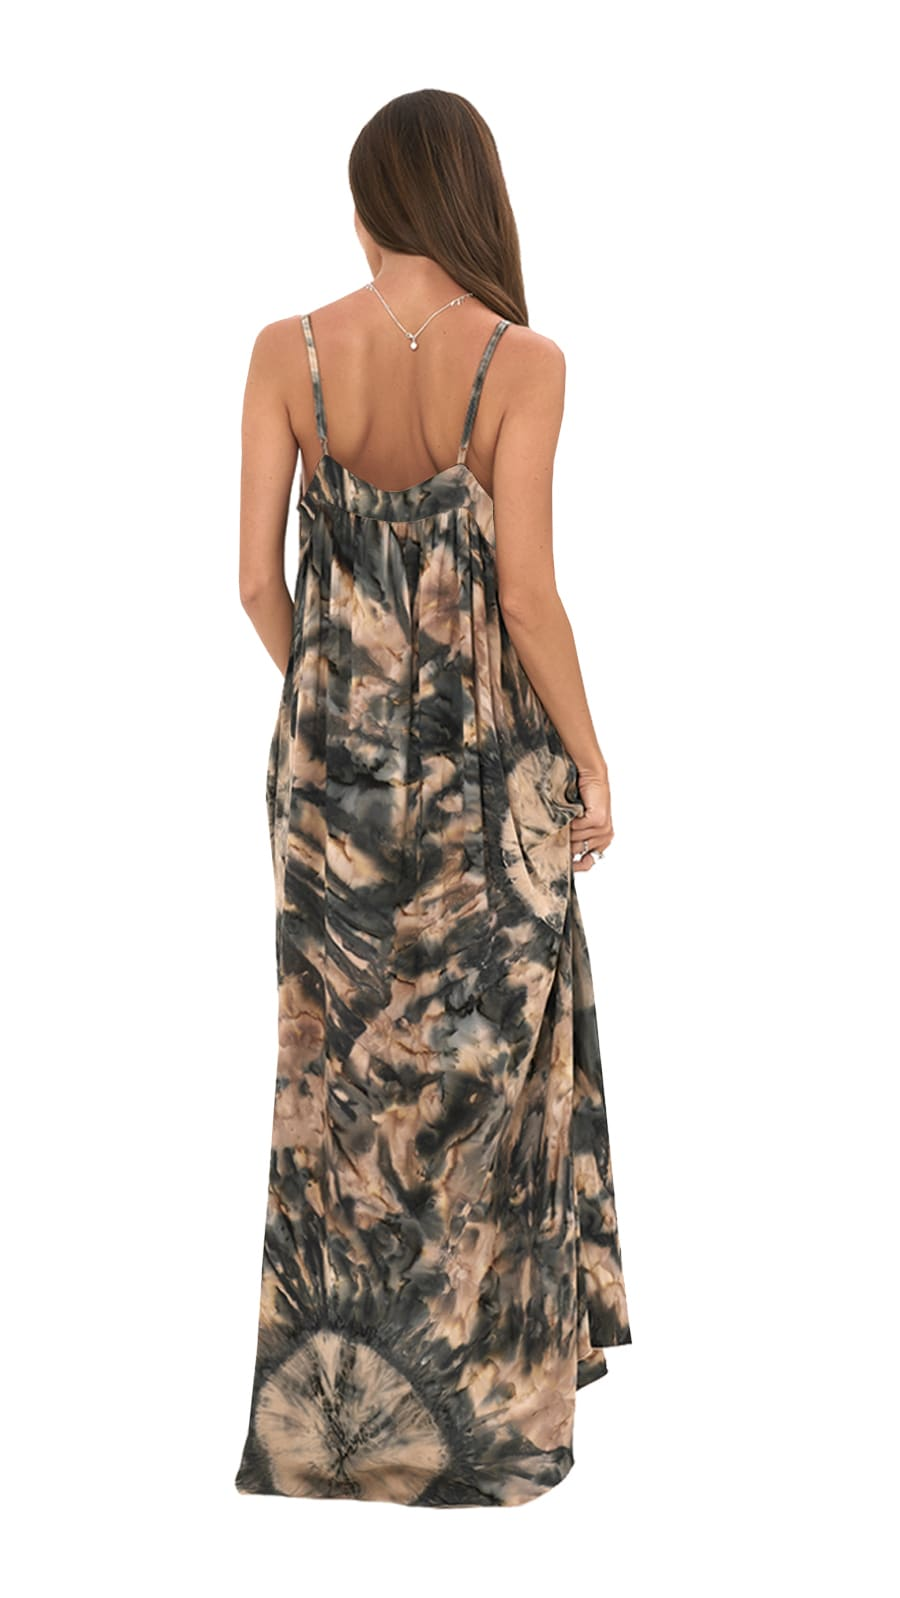 Alohi Dress - Tie Dye-Kahlua - Back